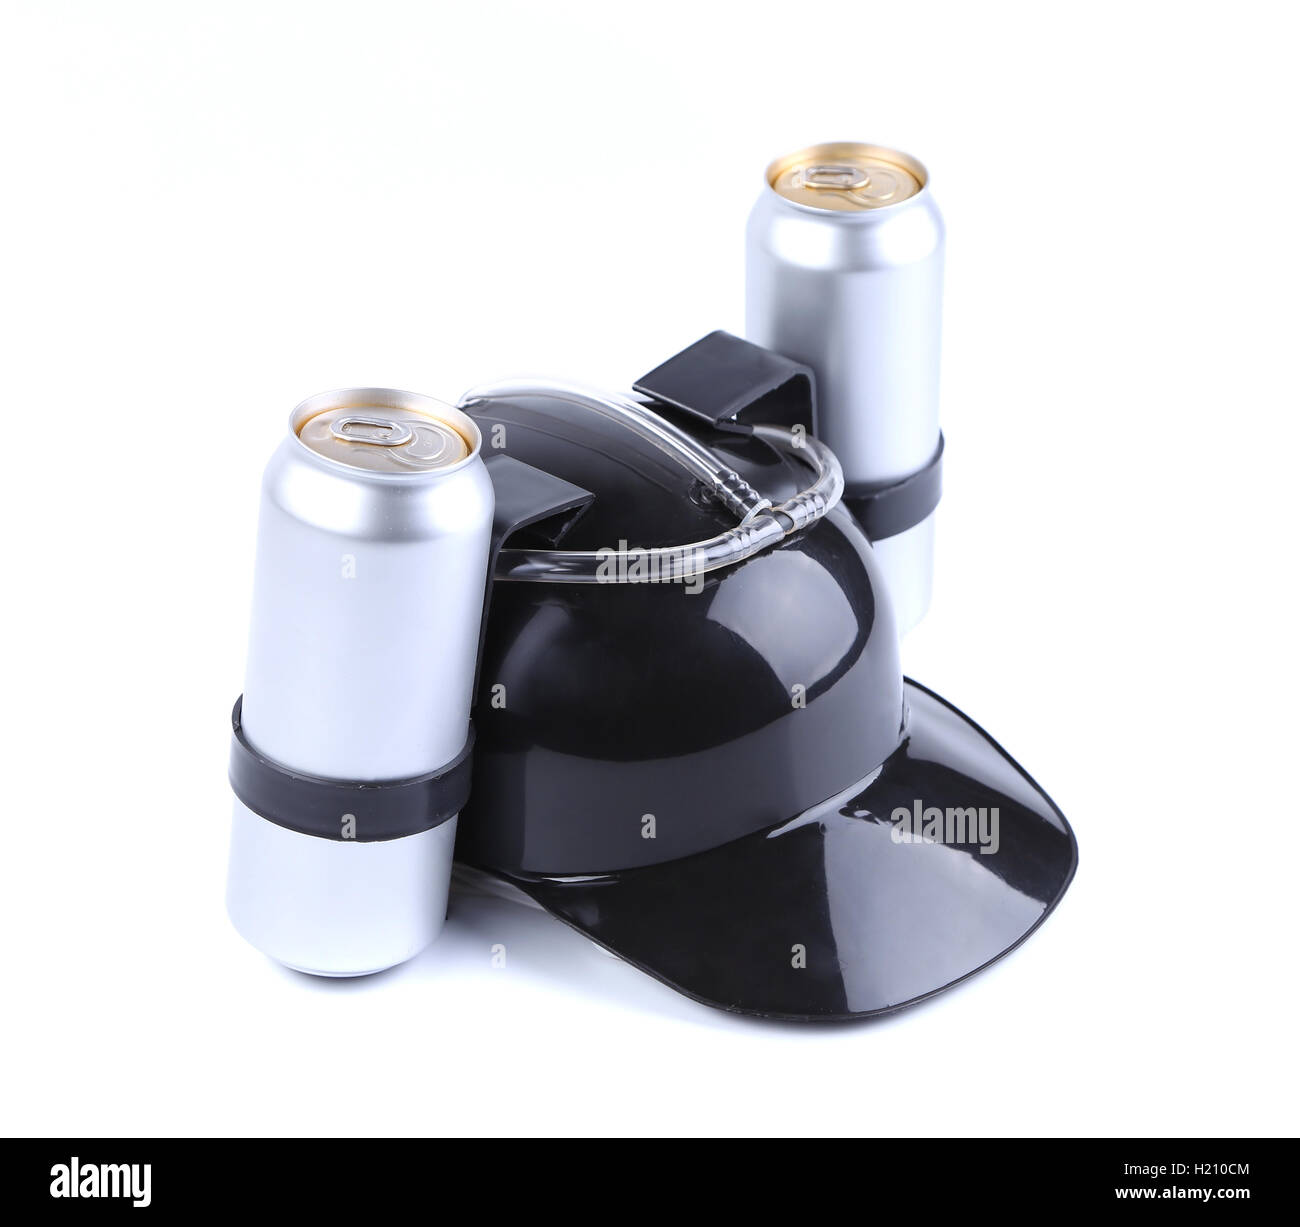 Hands free for drink black hat. - Stock Image